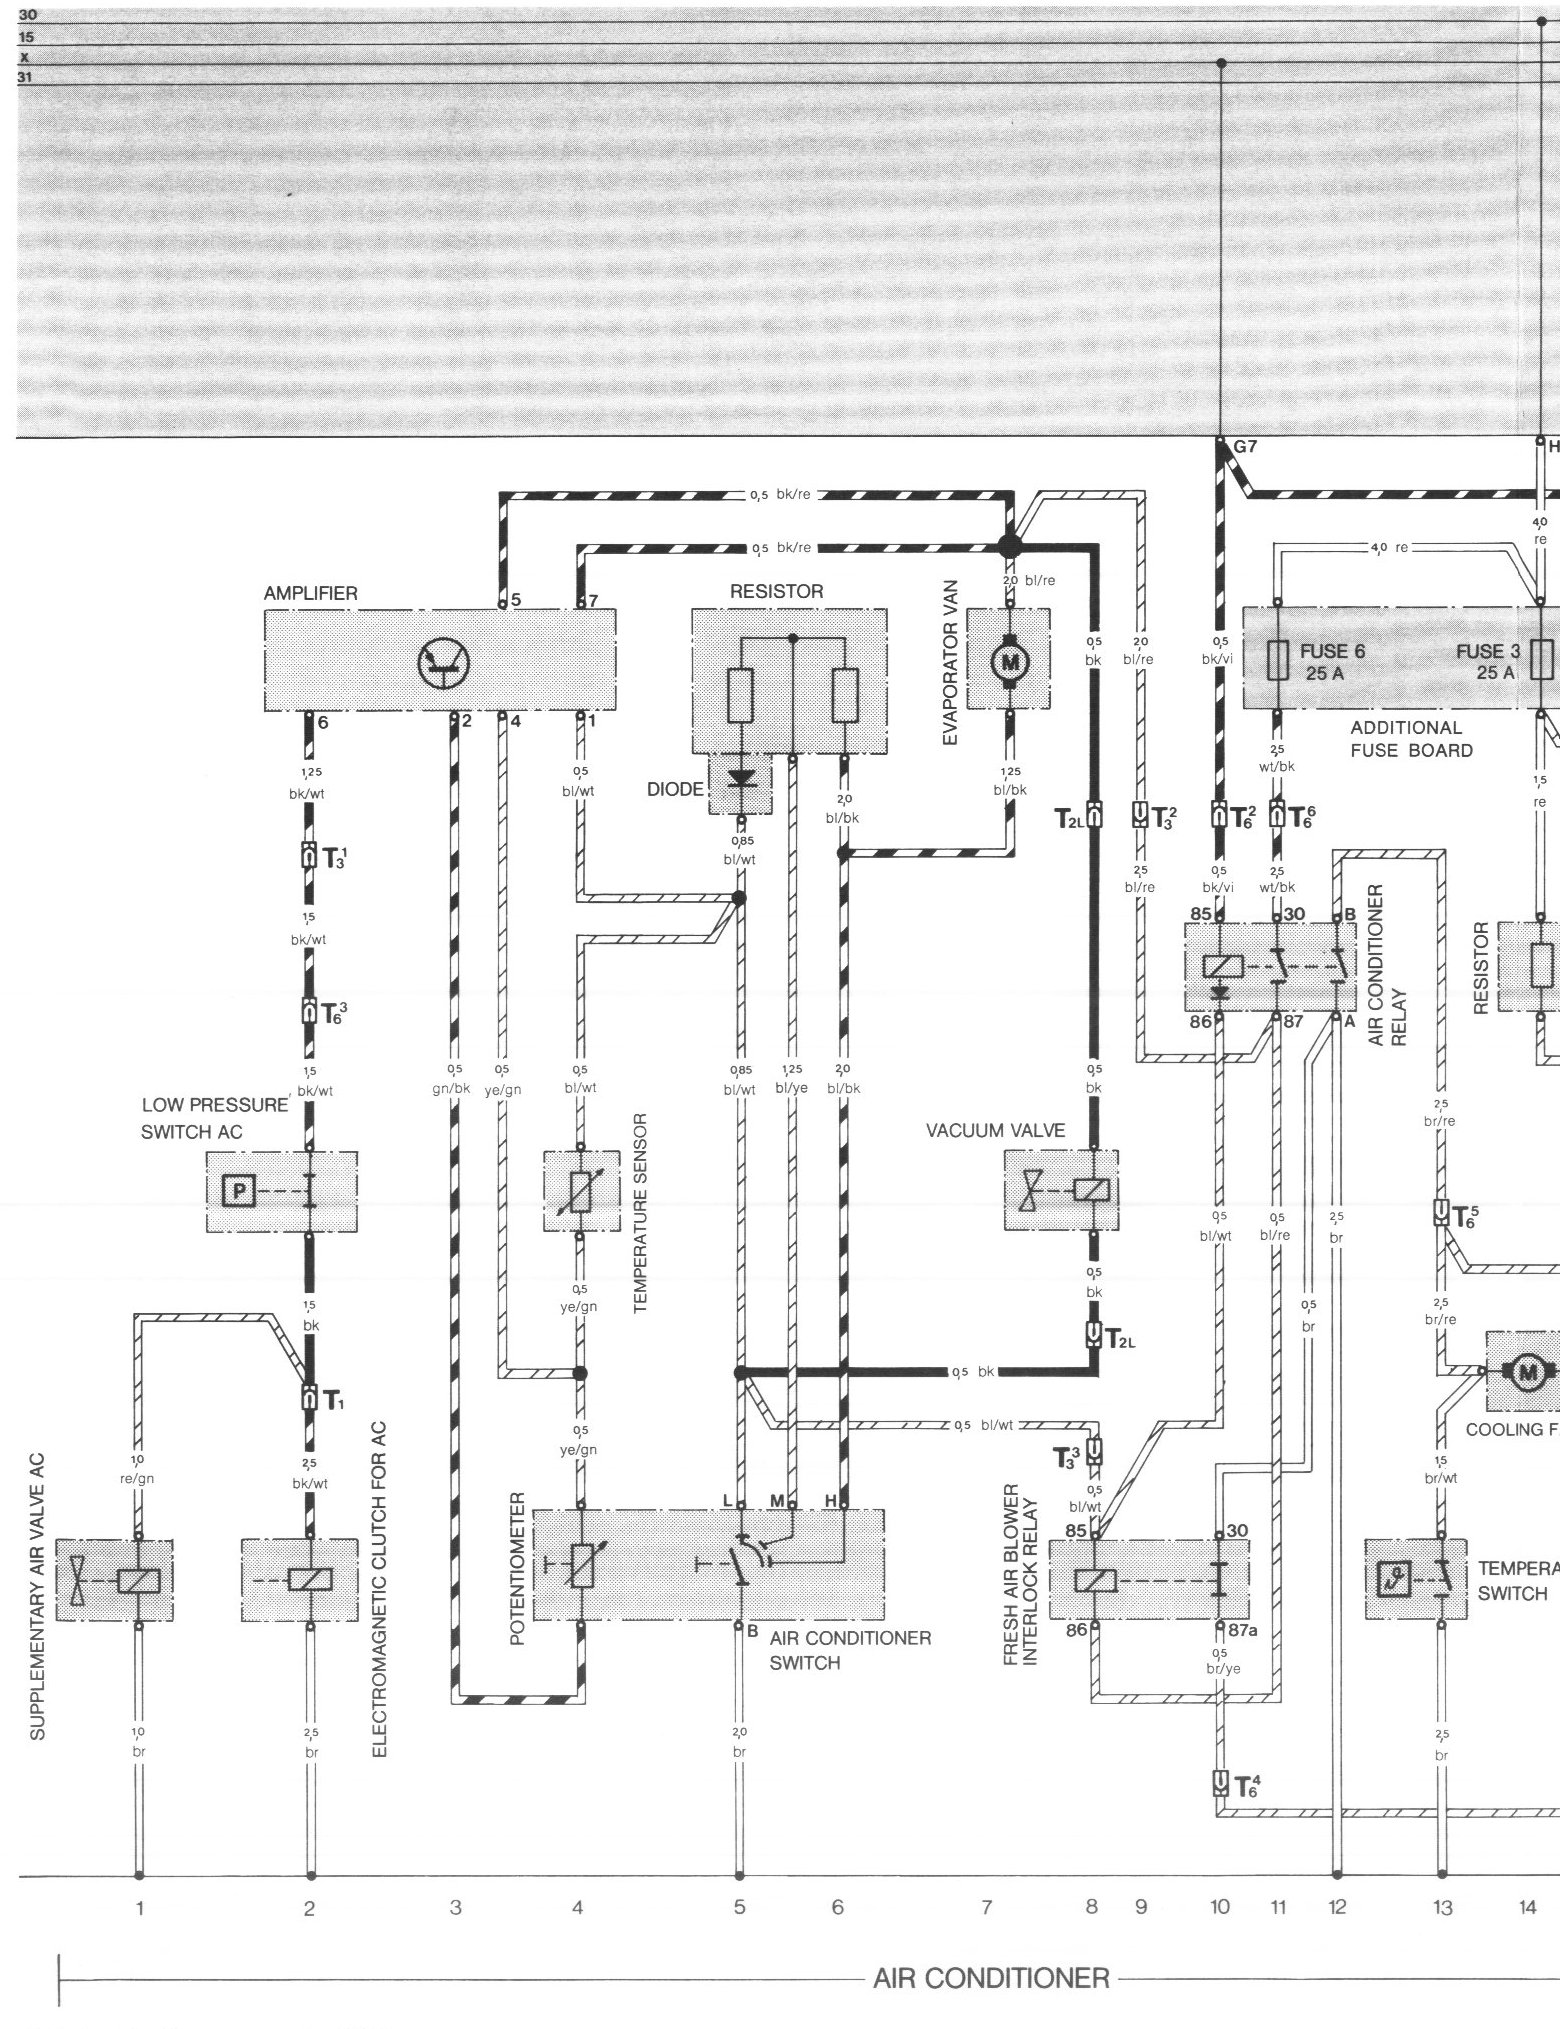 84 944 fuse box diagram wiring librarypelican parts porsche 924 944 electrical diagrams porsche 944 fuse [ 1560 x 2029 Pixel ]